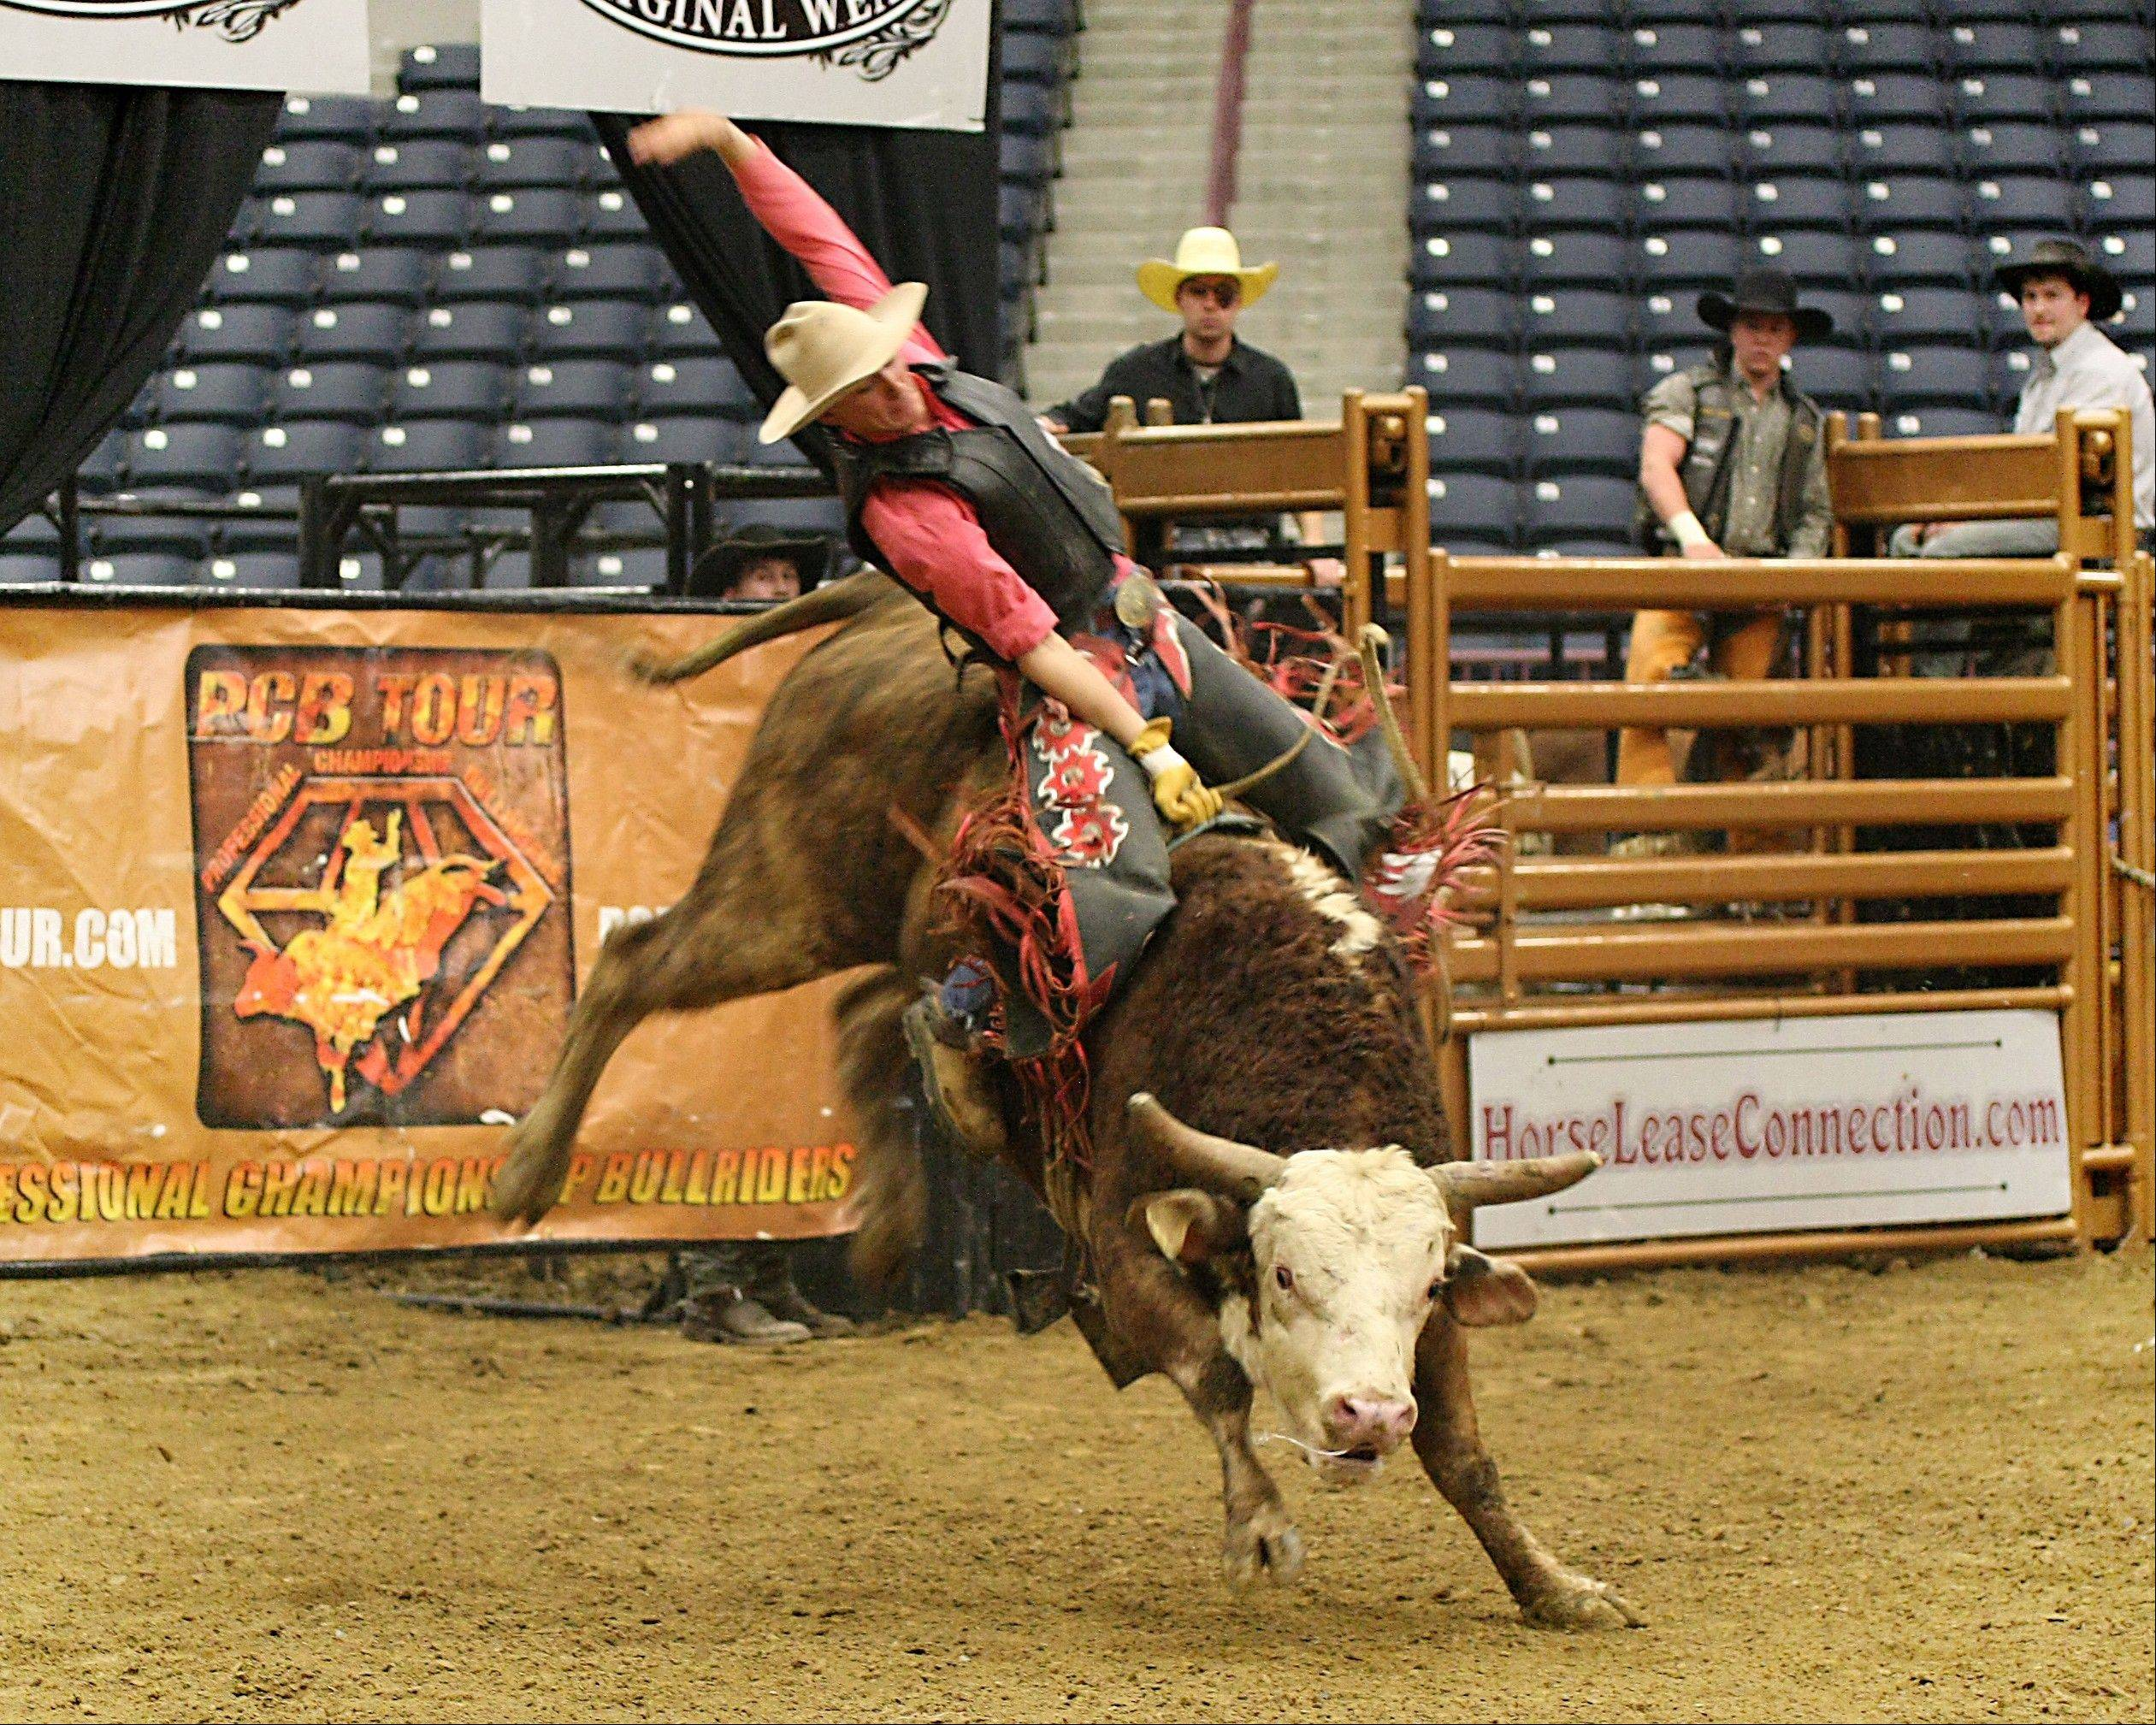 Bull Riders World Tour Finale VII comes to the Sears Centre Arena this weekend.